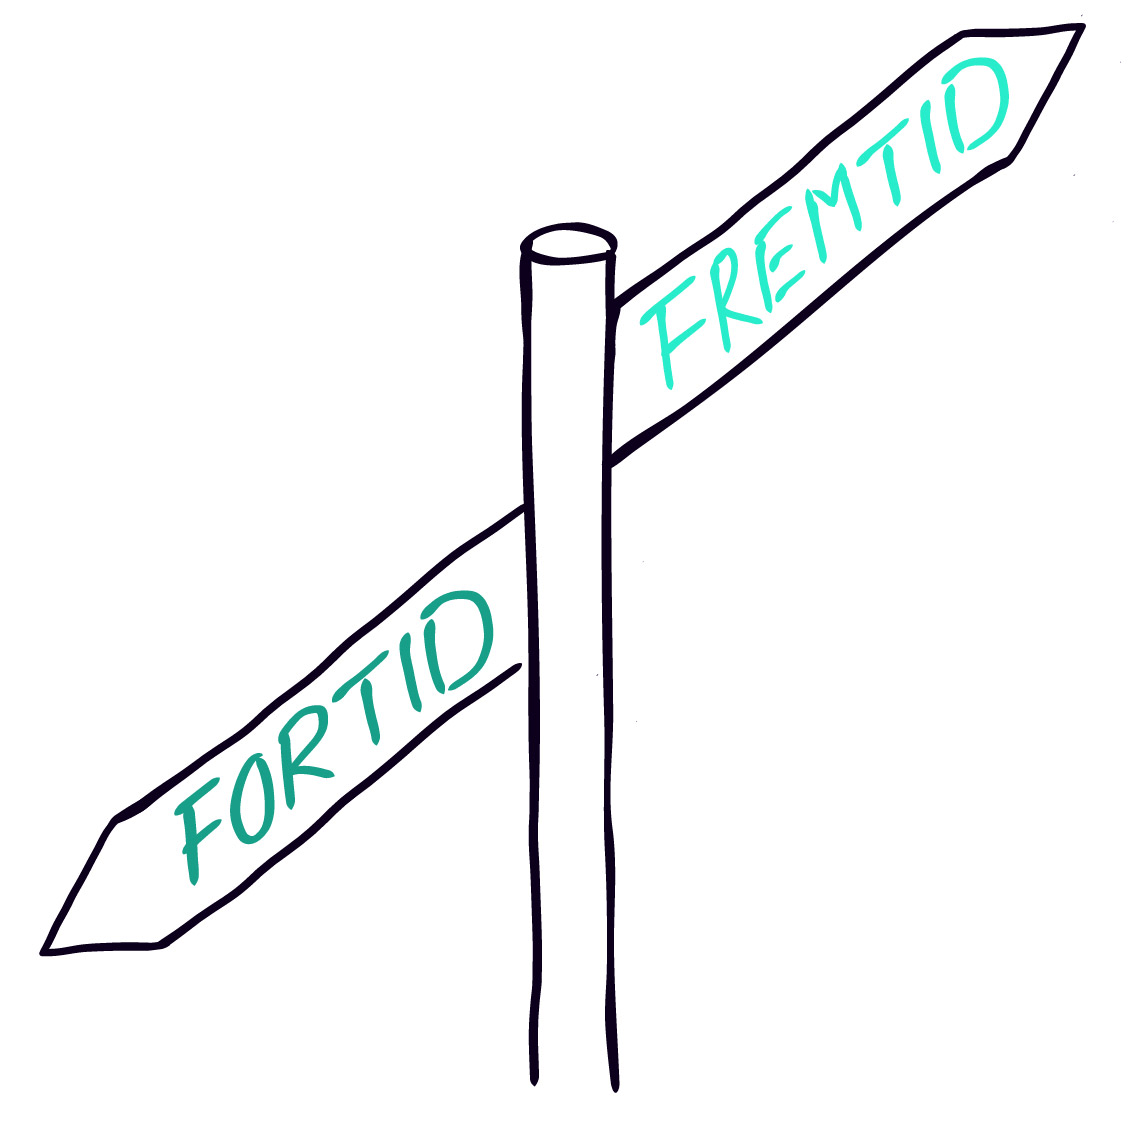 History illustration for course page - sign pointing to the future and the past